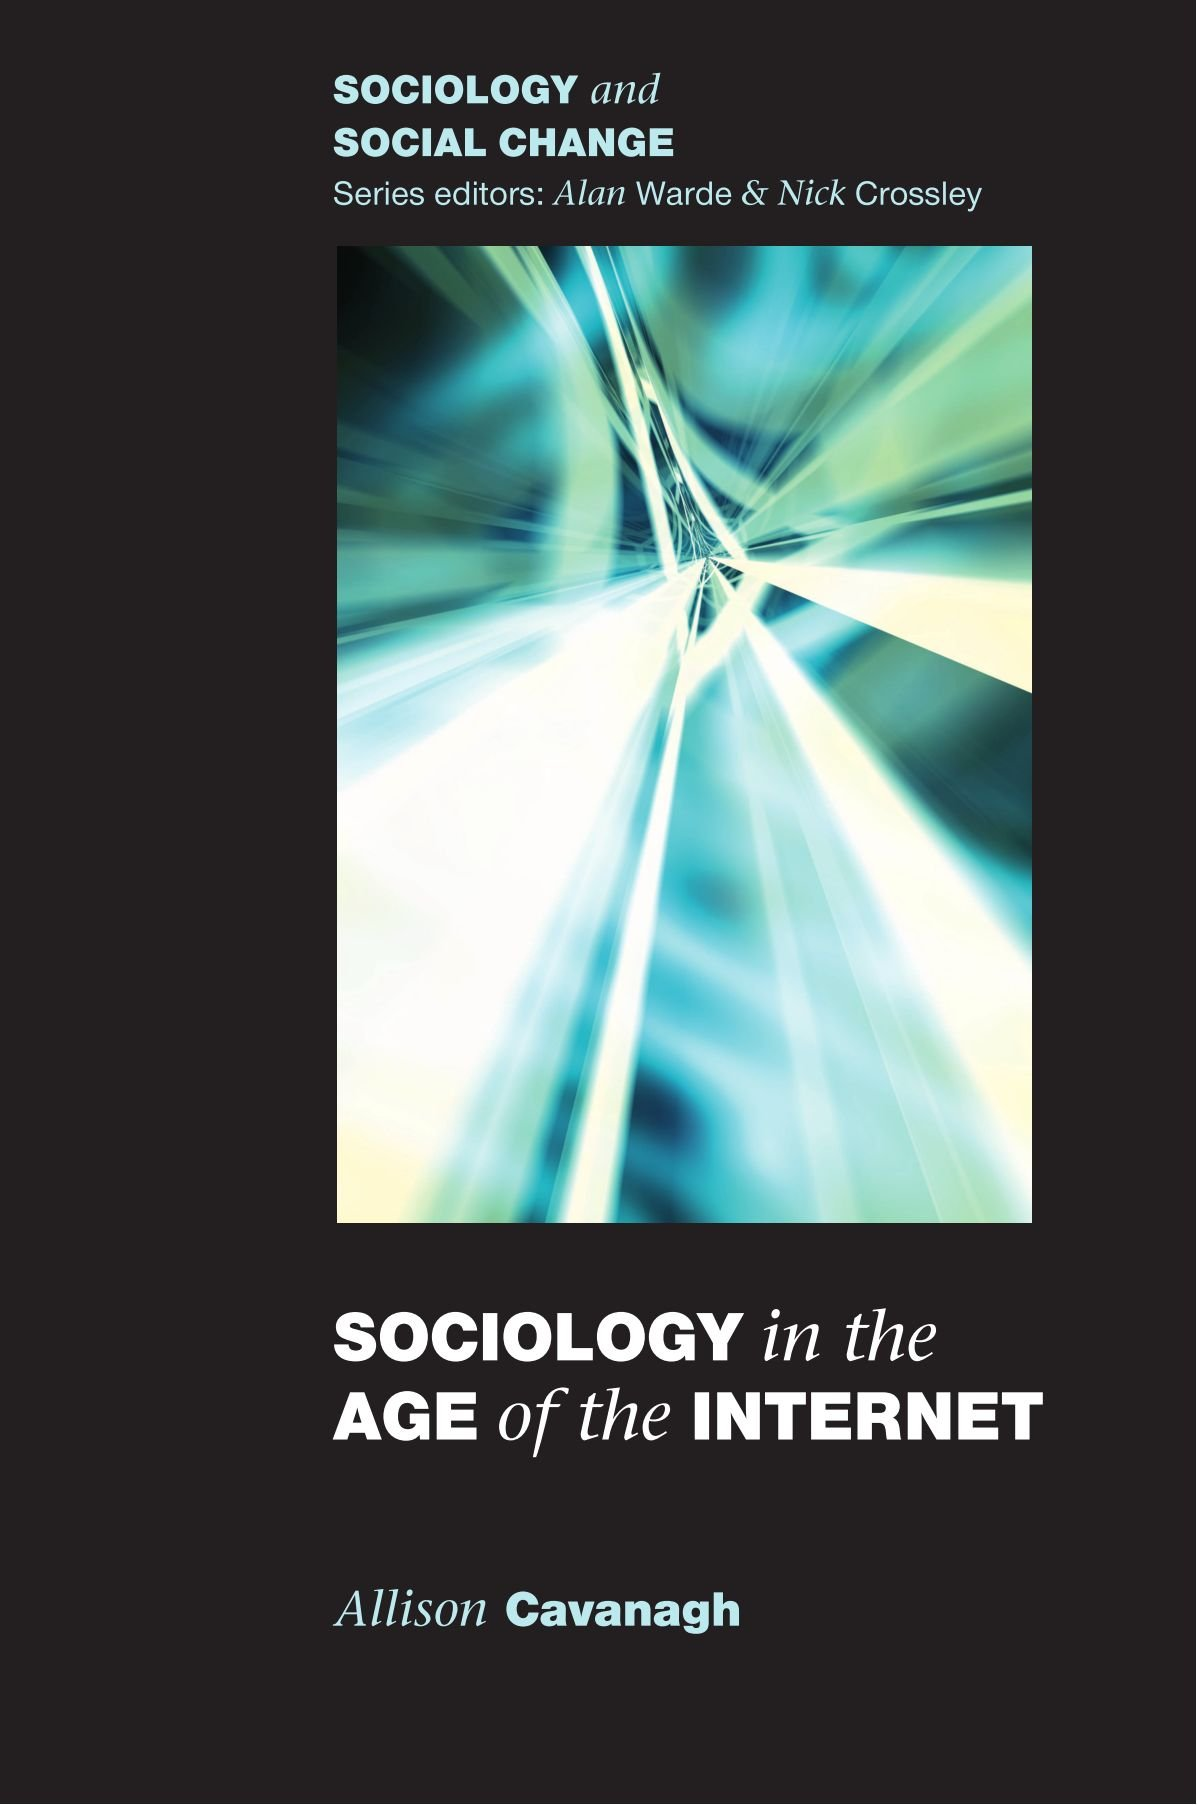 sociology in the age of the internet uk higher education oup sociology in the age of the internet uk higher education oup humanities social sciences sociology co uk allison cavanagh 9780335217250 books